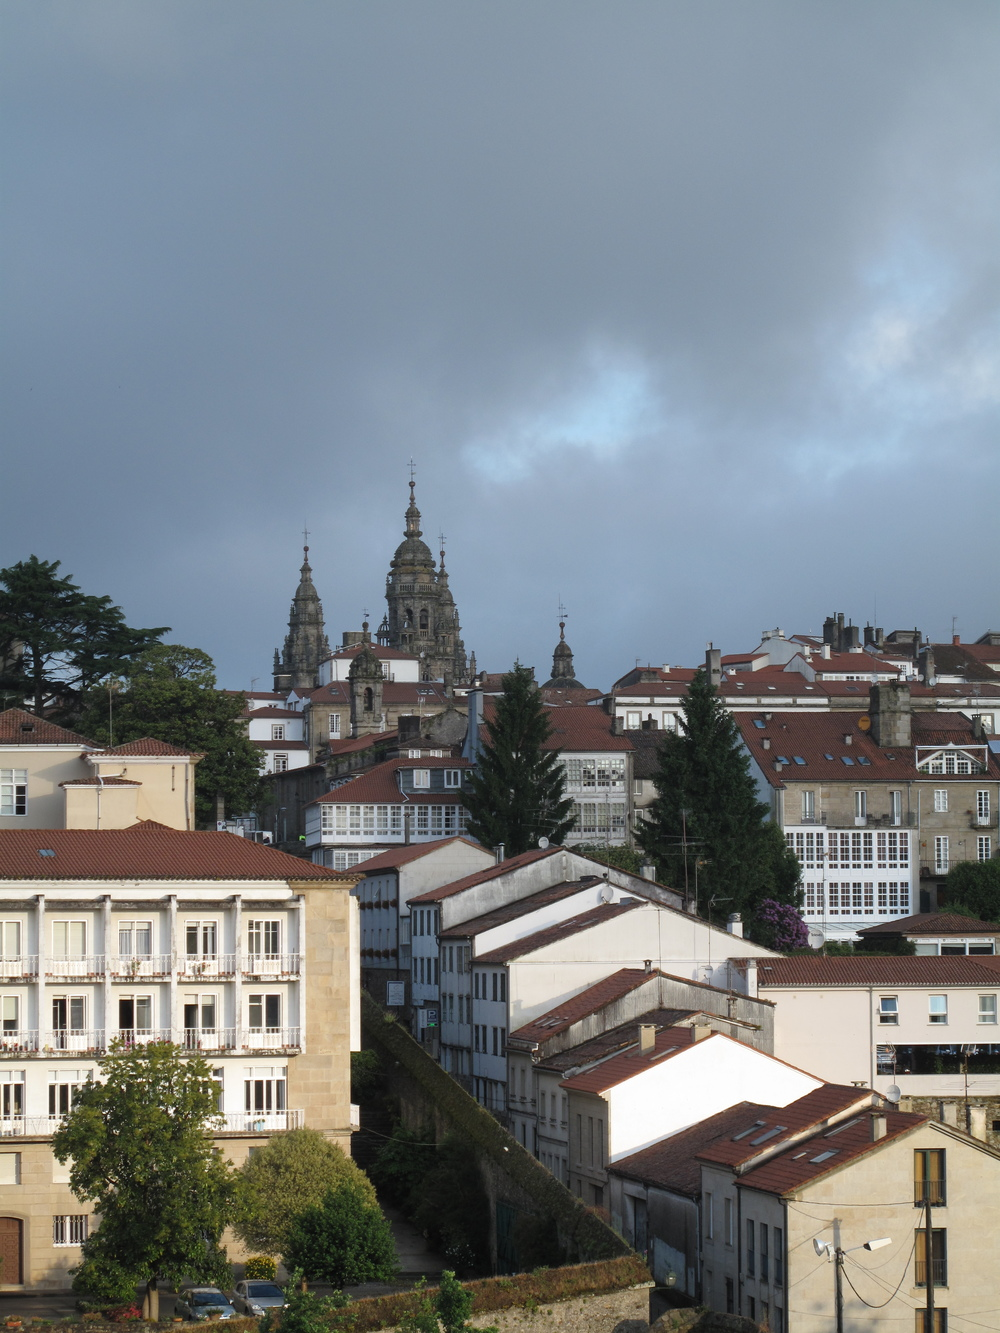 The first view of the Cathedral in Santiago de Compostela.